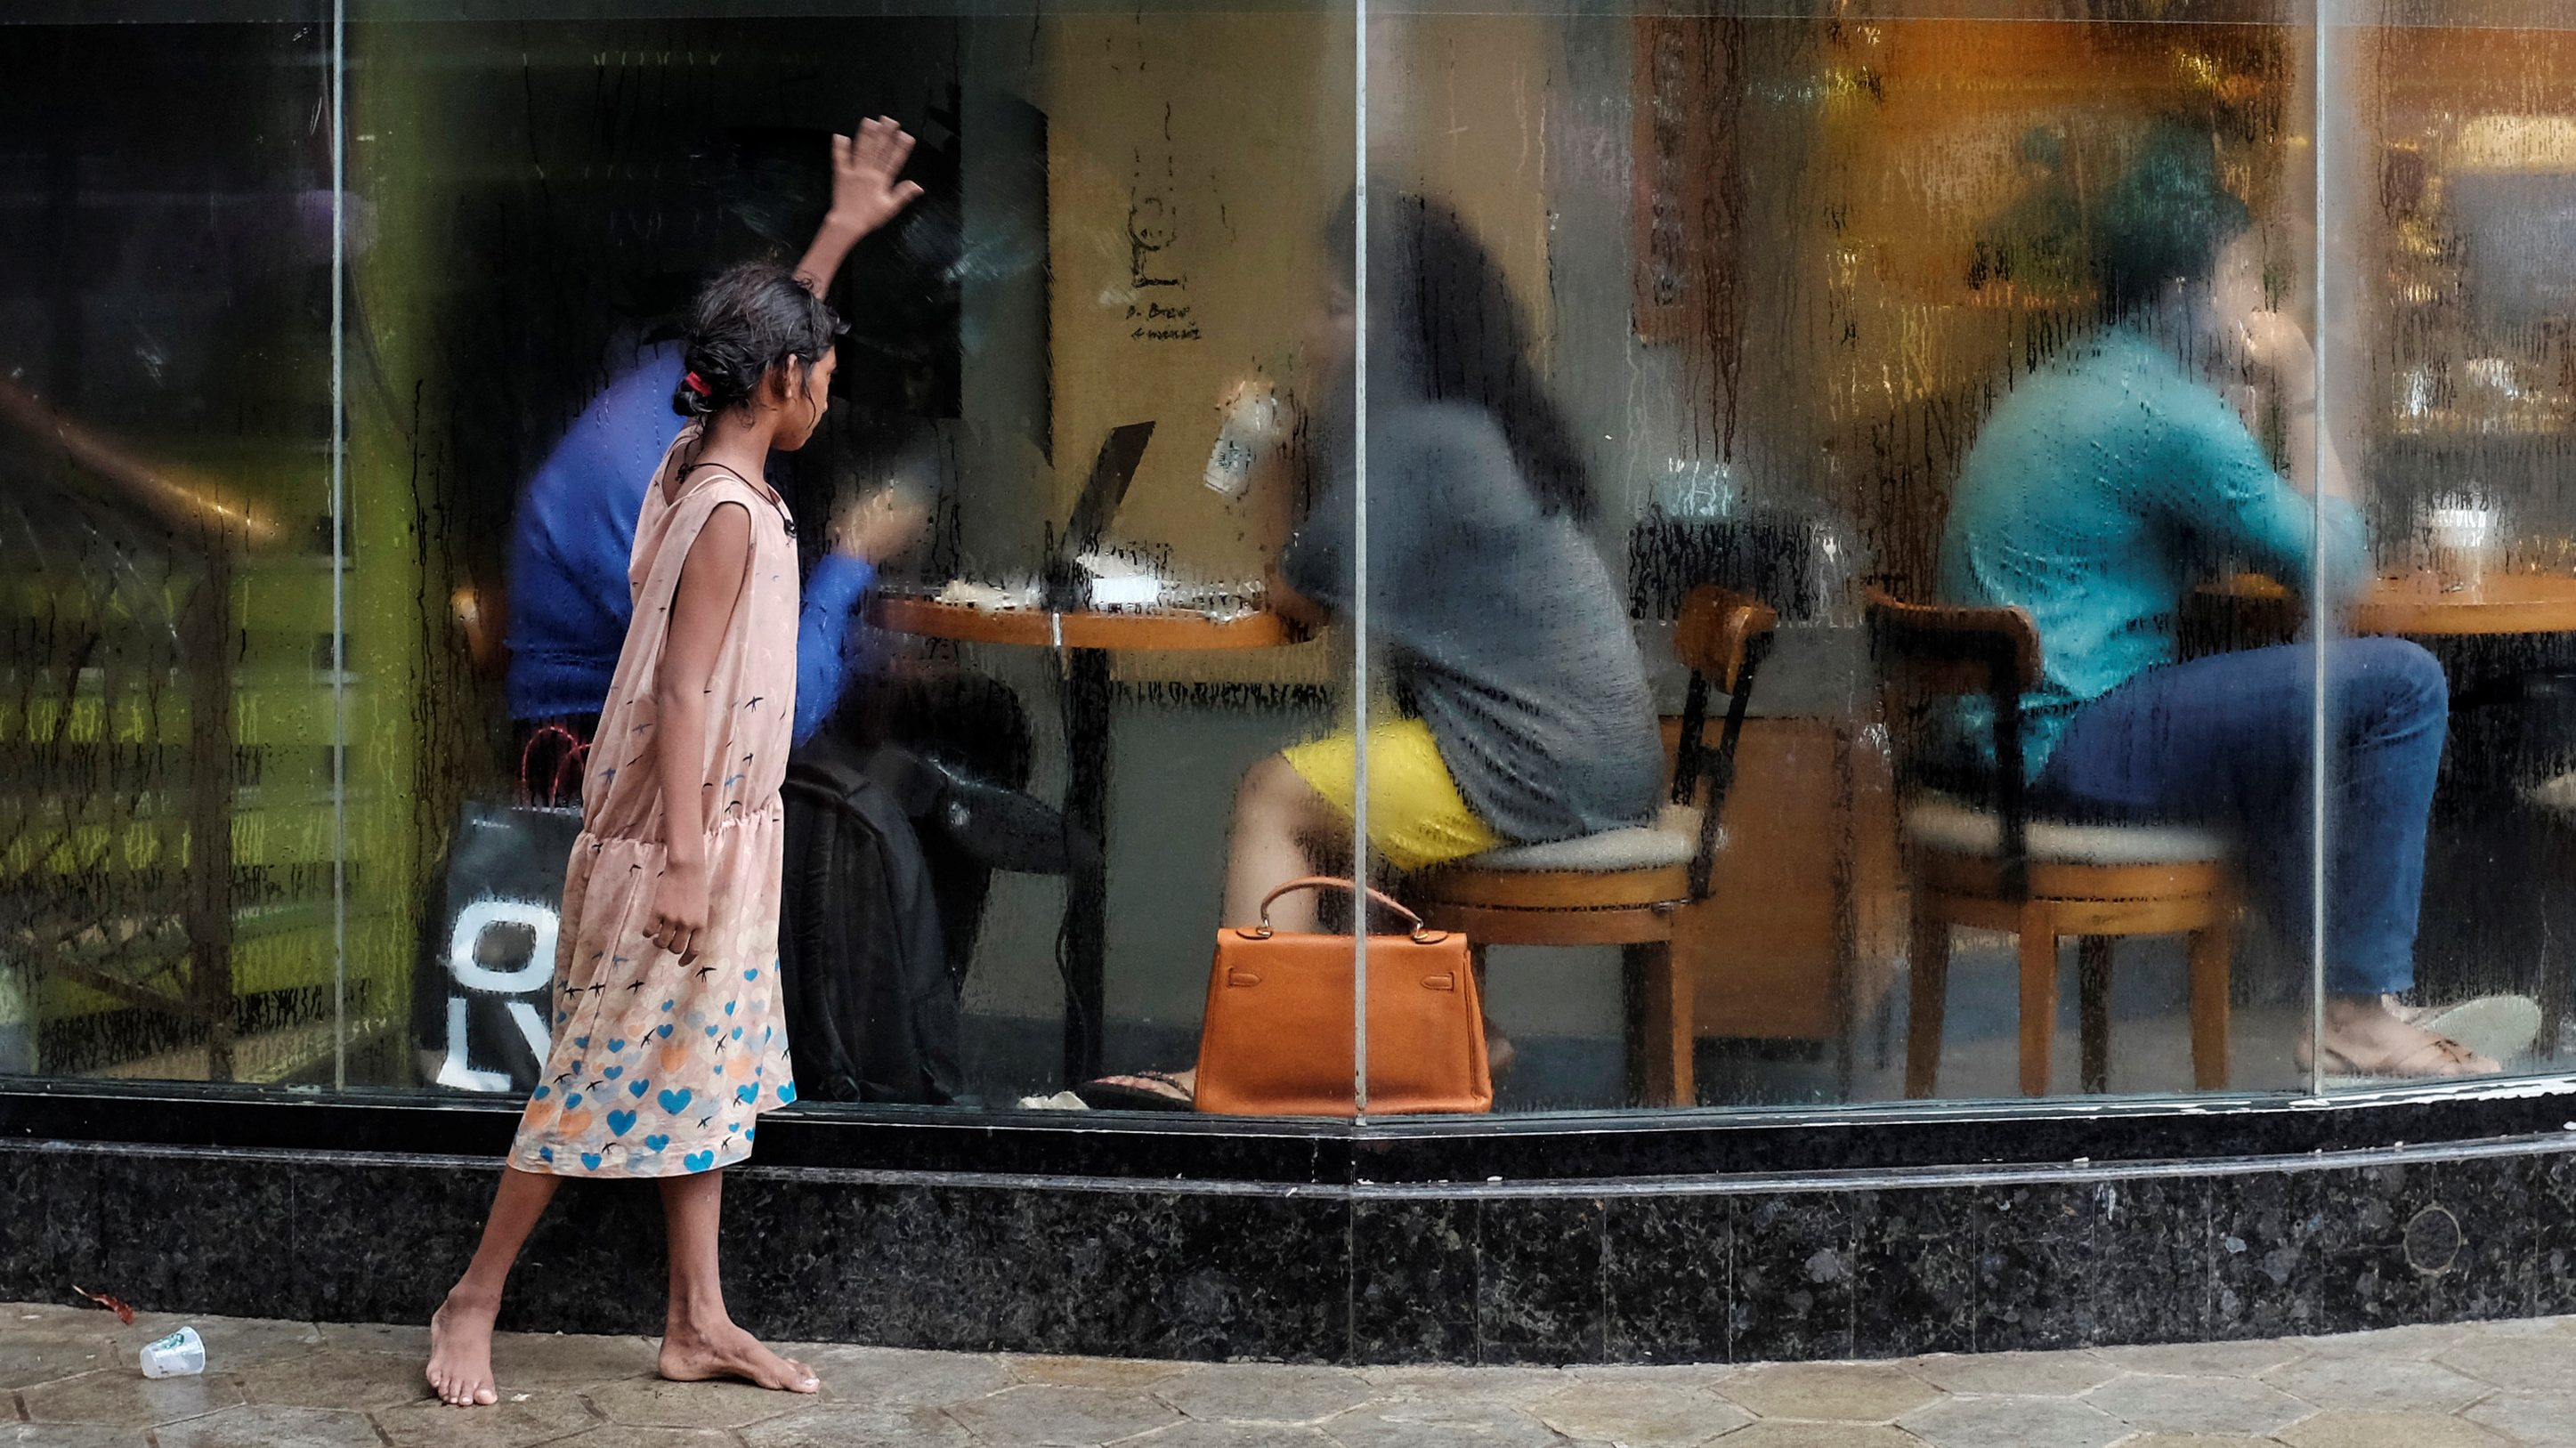 A homeless girl asks for alms outside a coffee shop in Mumbai